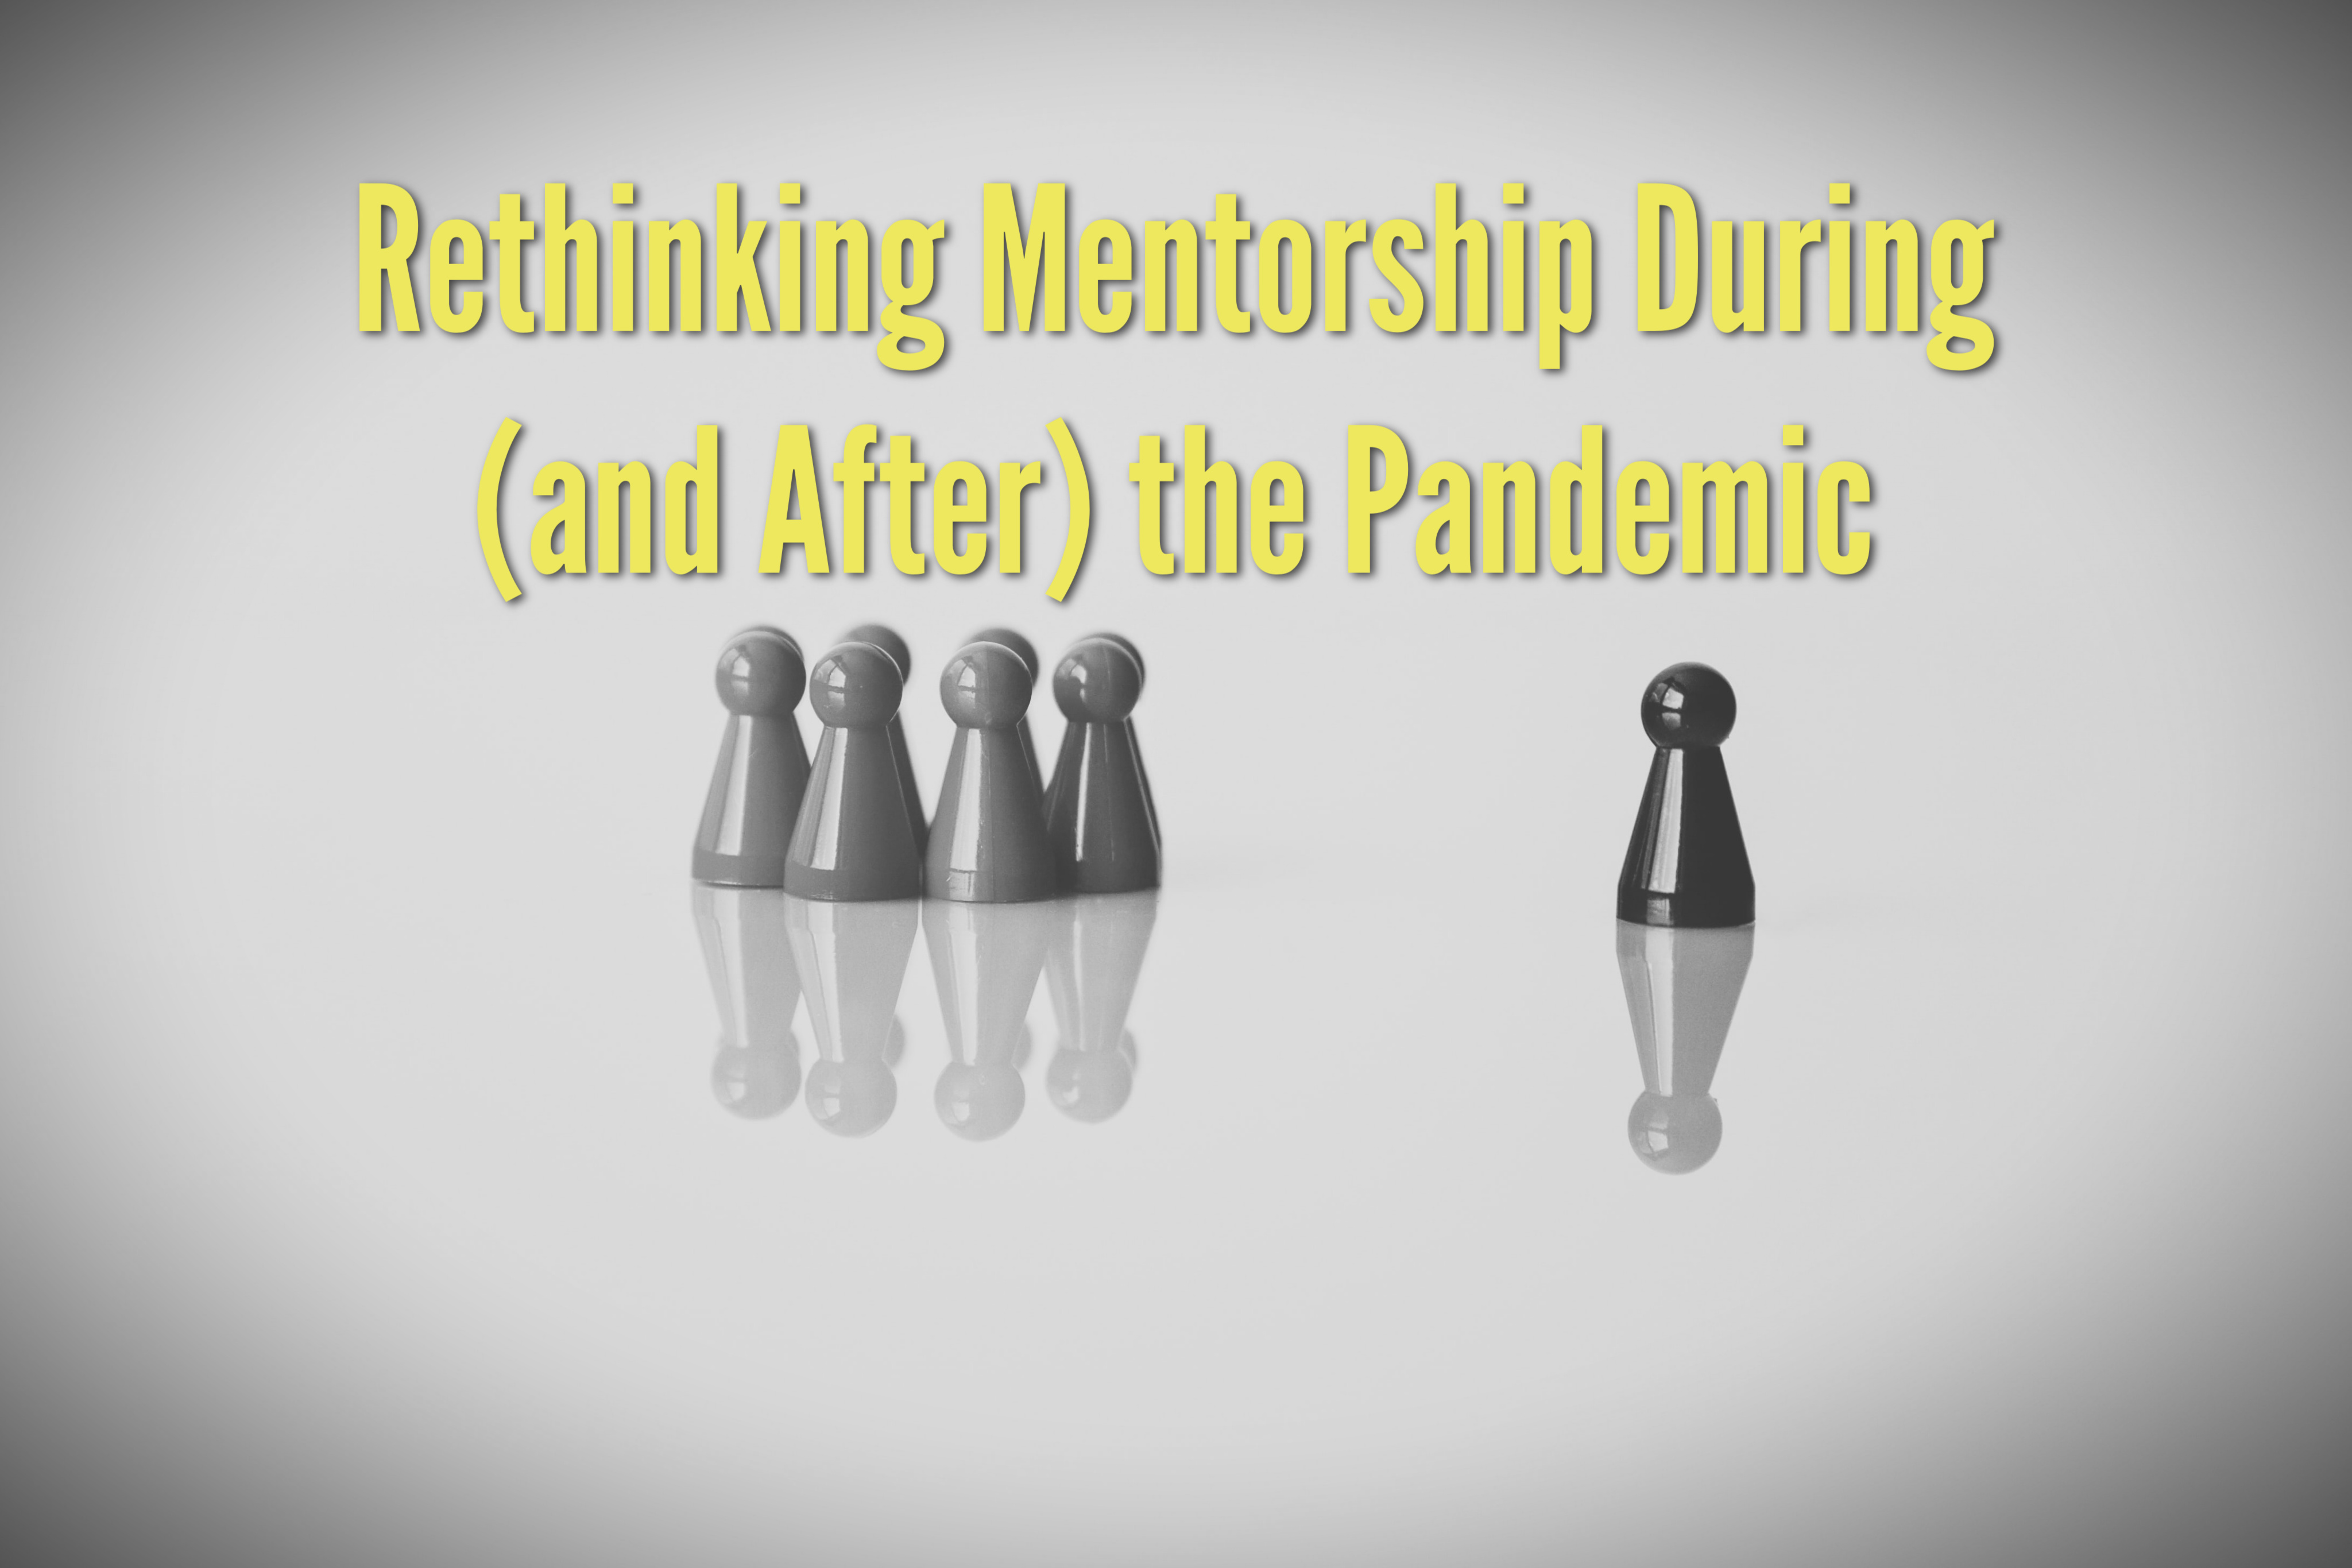 Rethinking Mentorship During (and After) the Pandemic